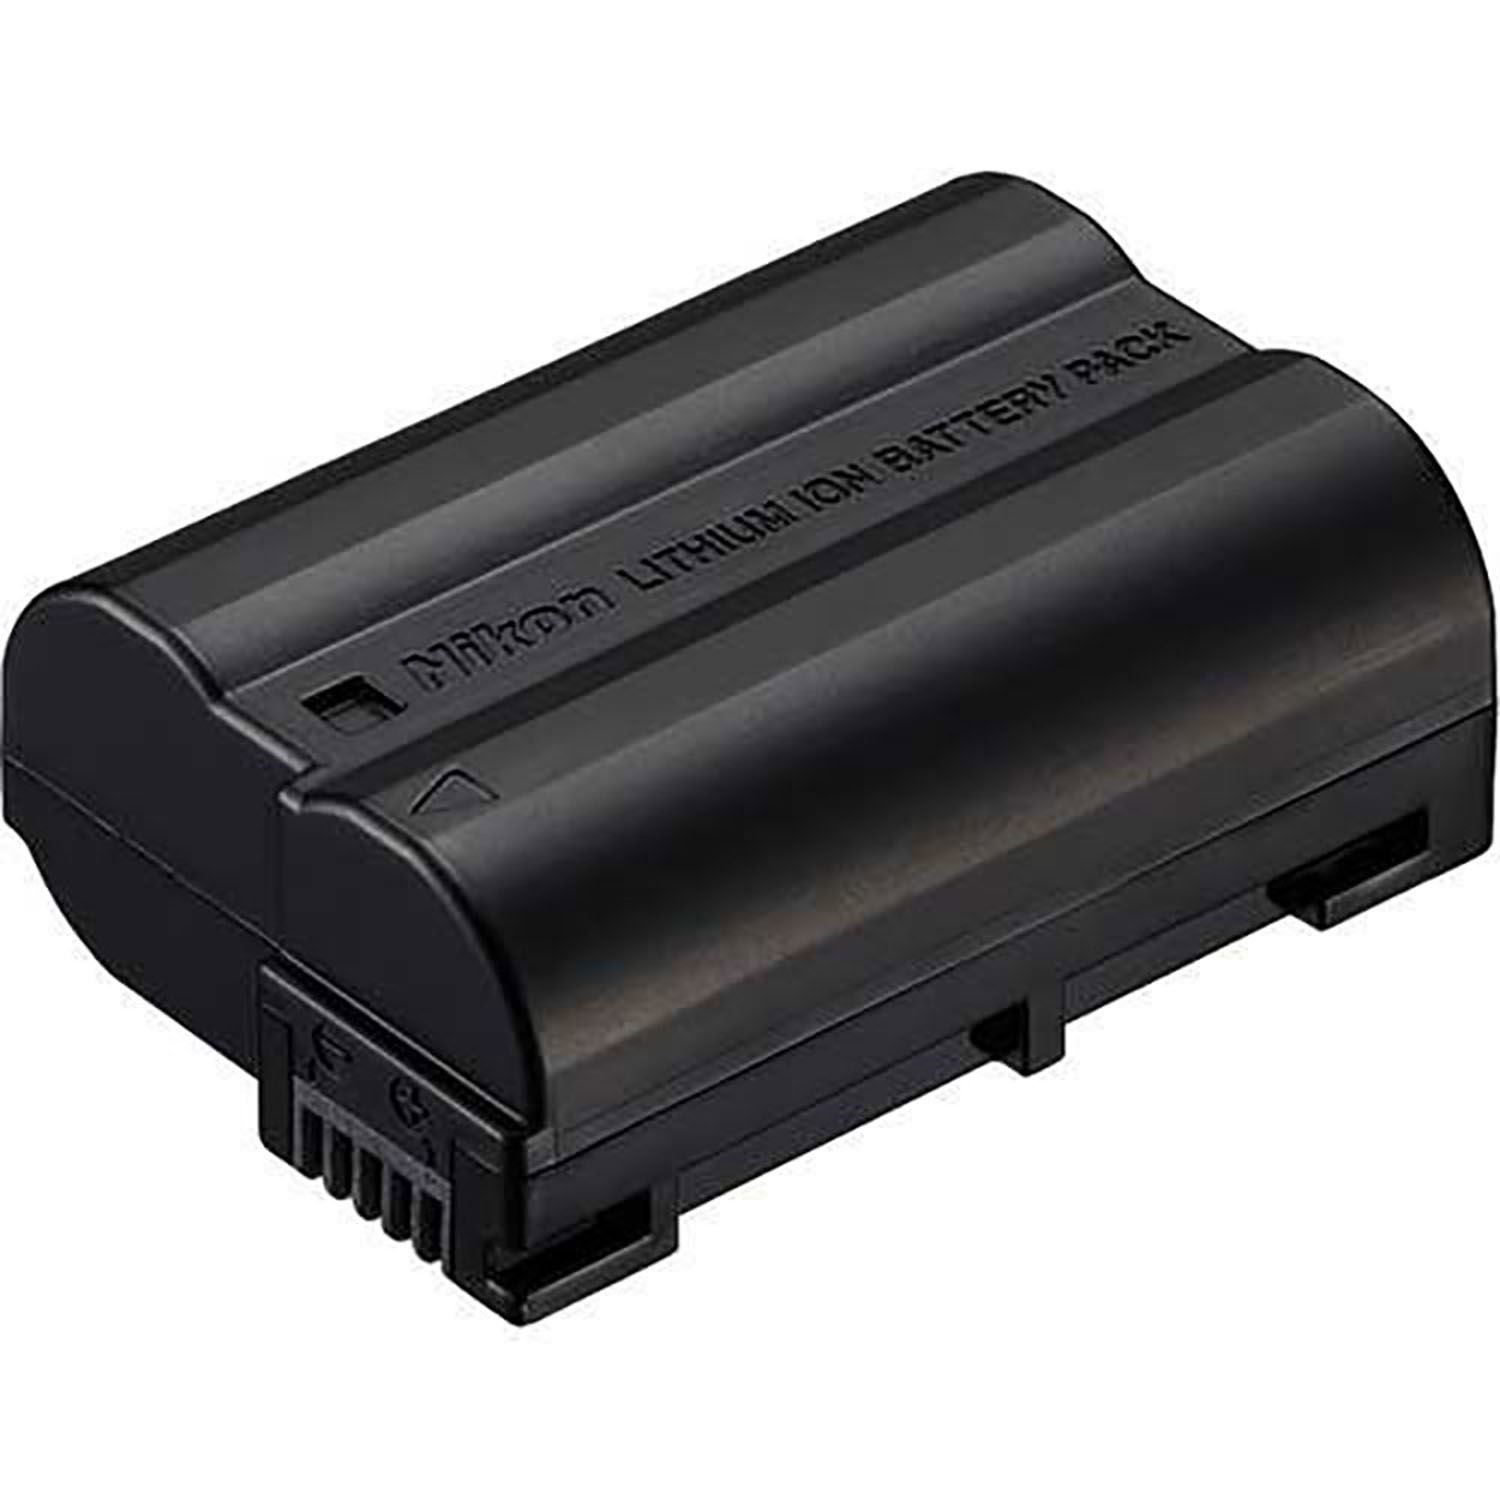 باطری EN-EL 15 نیکون      Nikon Rechargeable Battery EN-EL 15